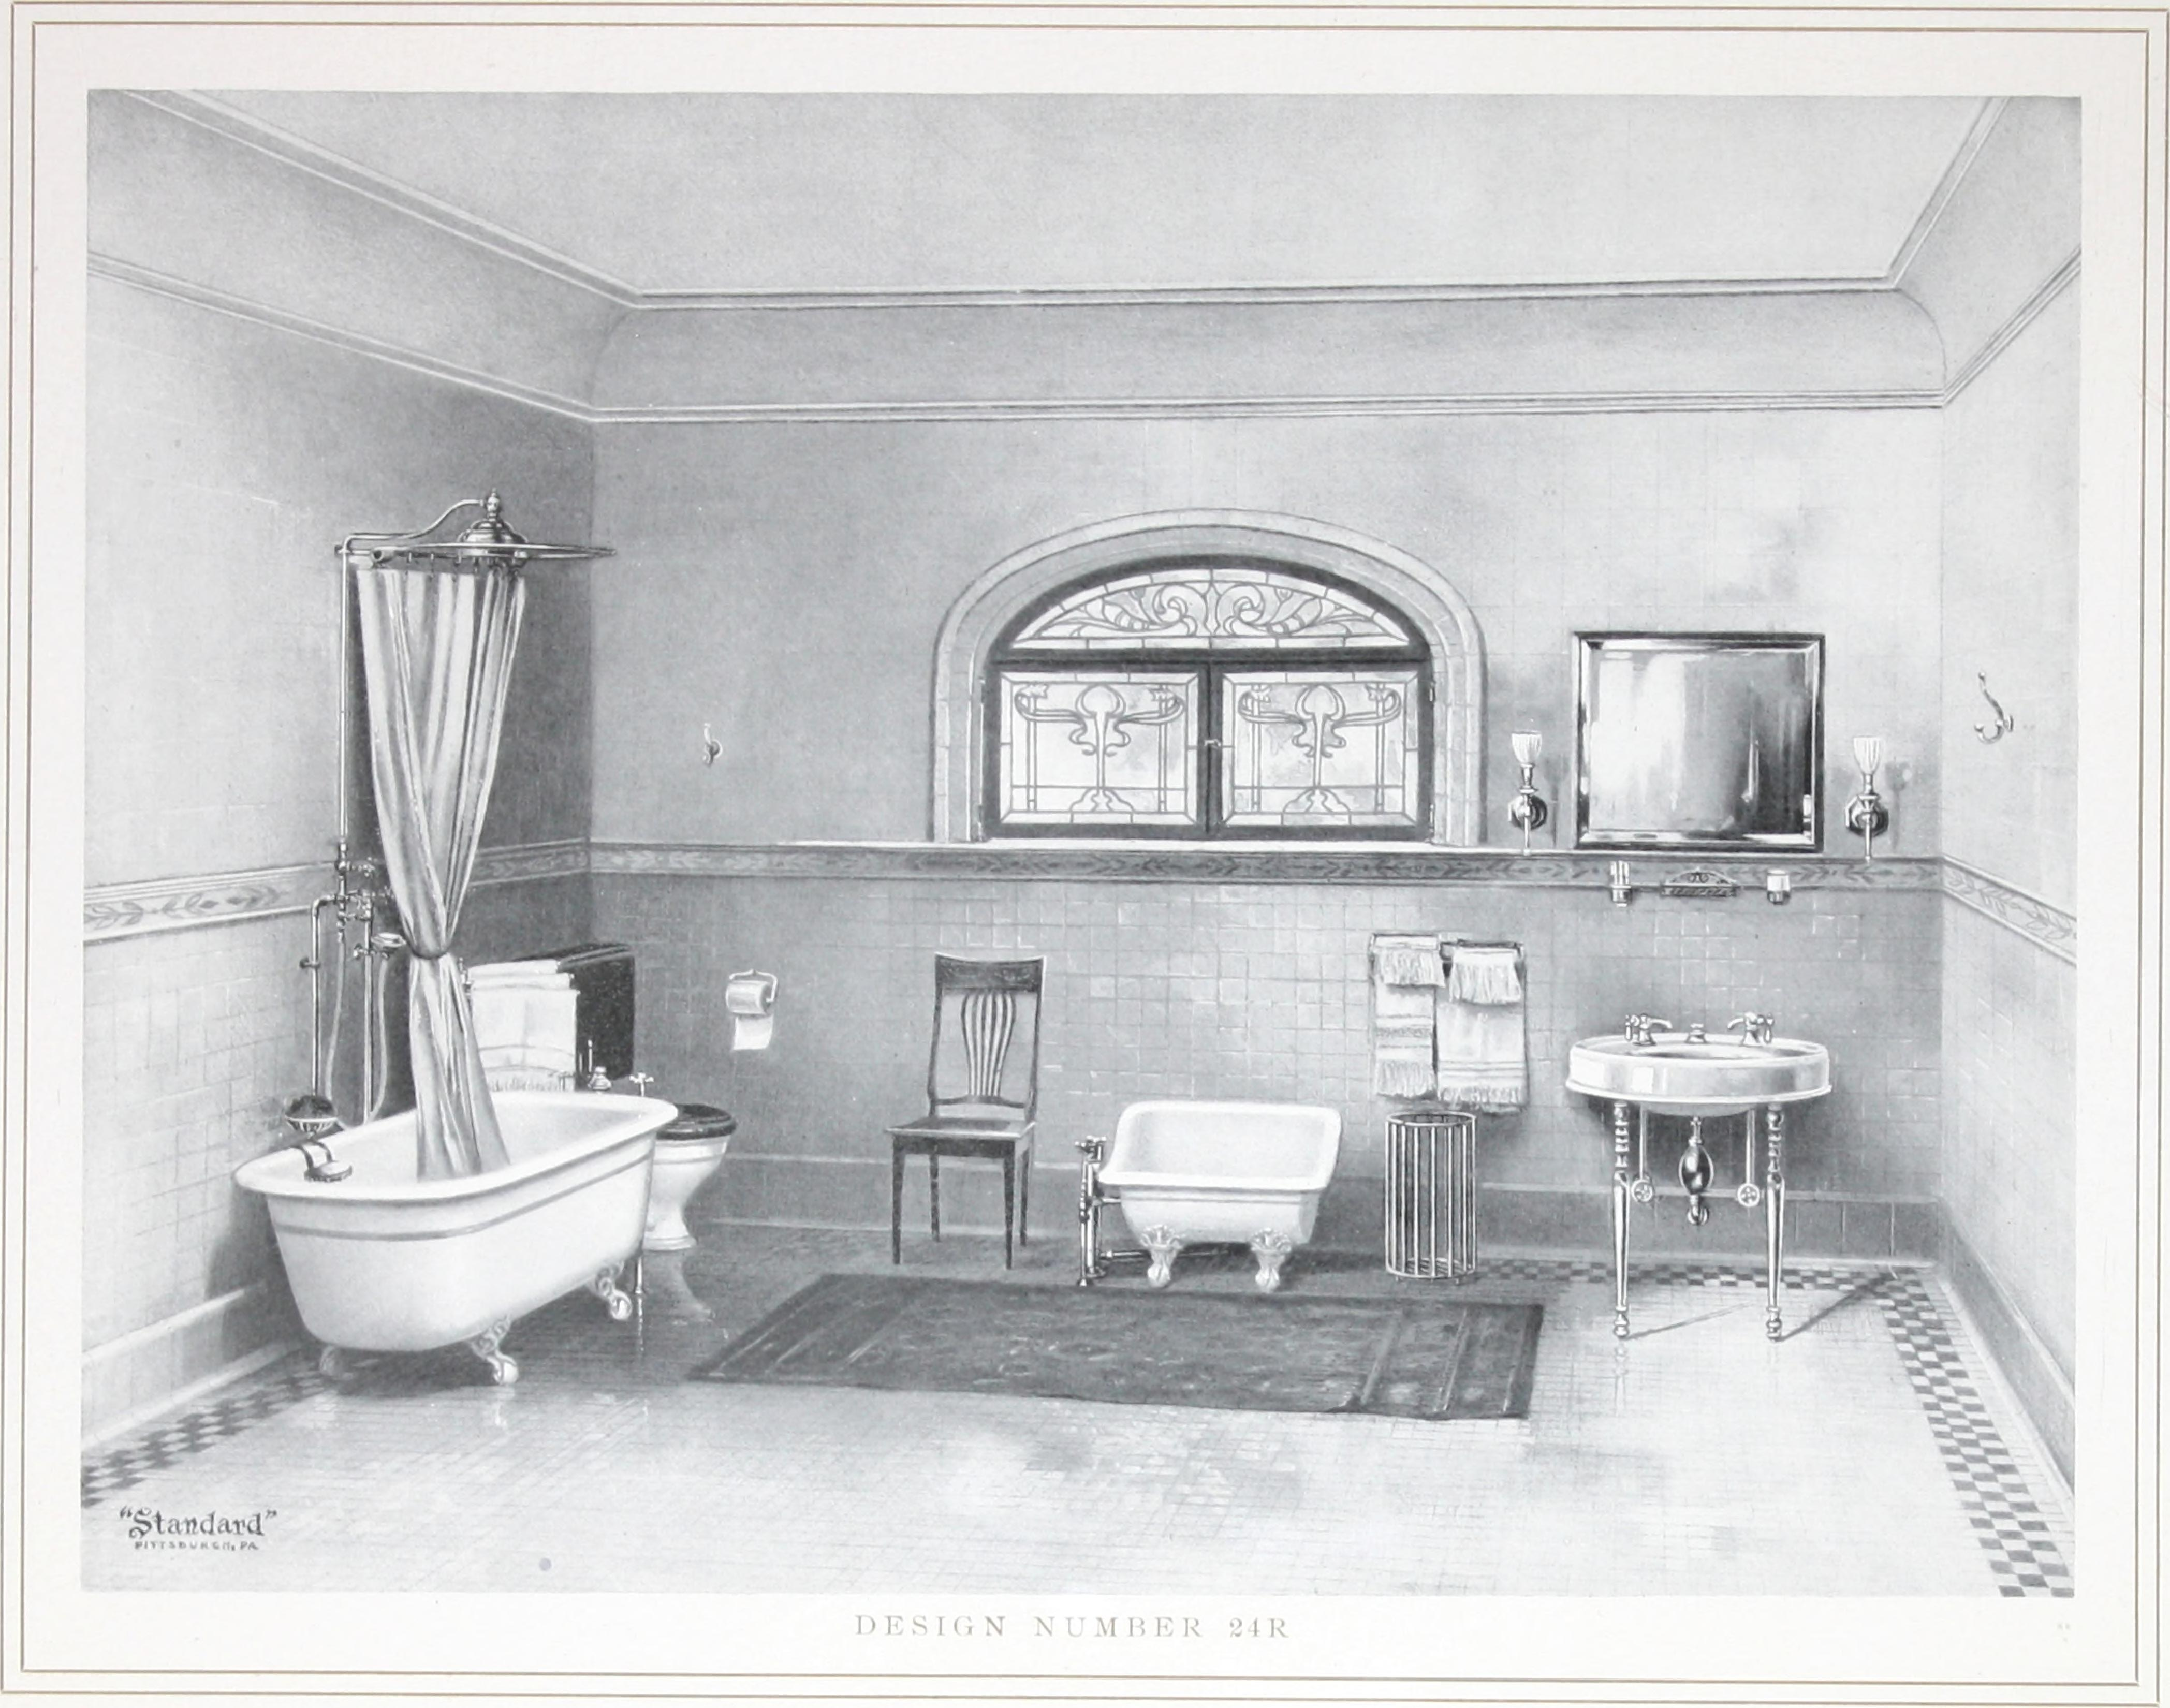 suggestions about plumbing valuable to home builders or those about to remodel their present dwellings. (1903) (14798031263).jpg English: Identifier: